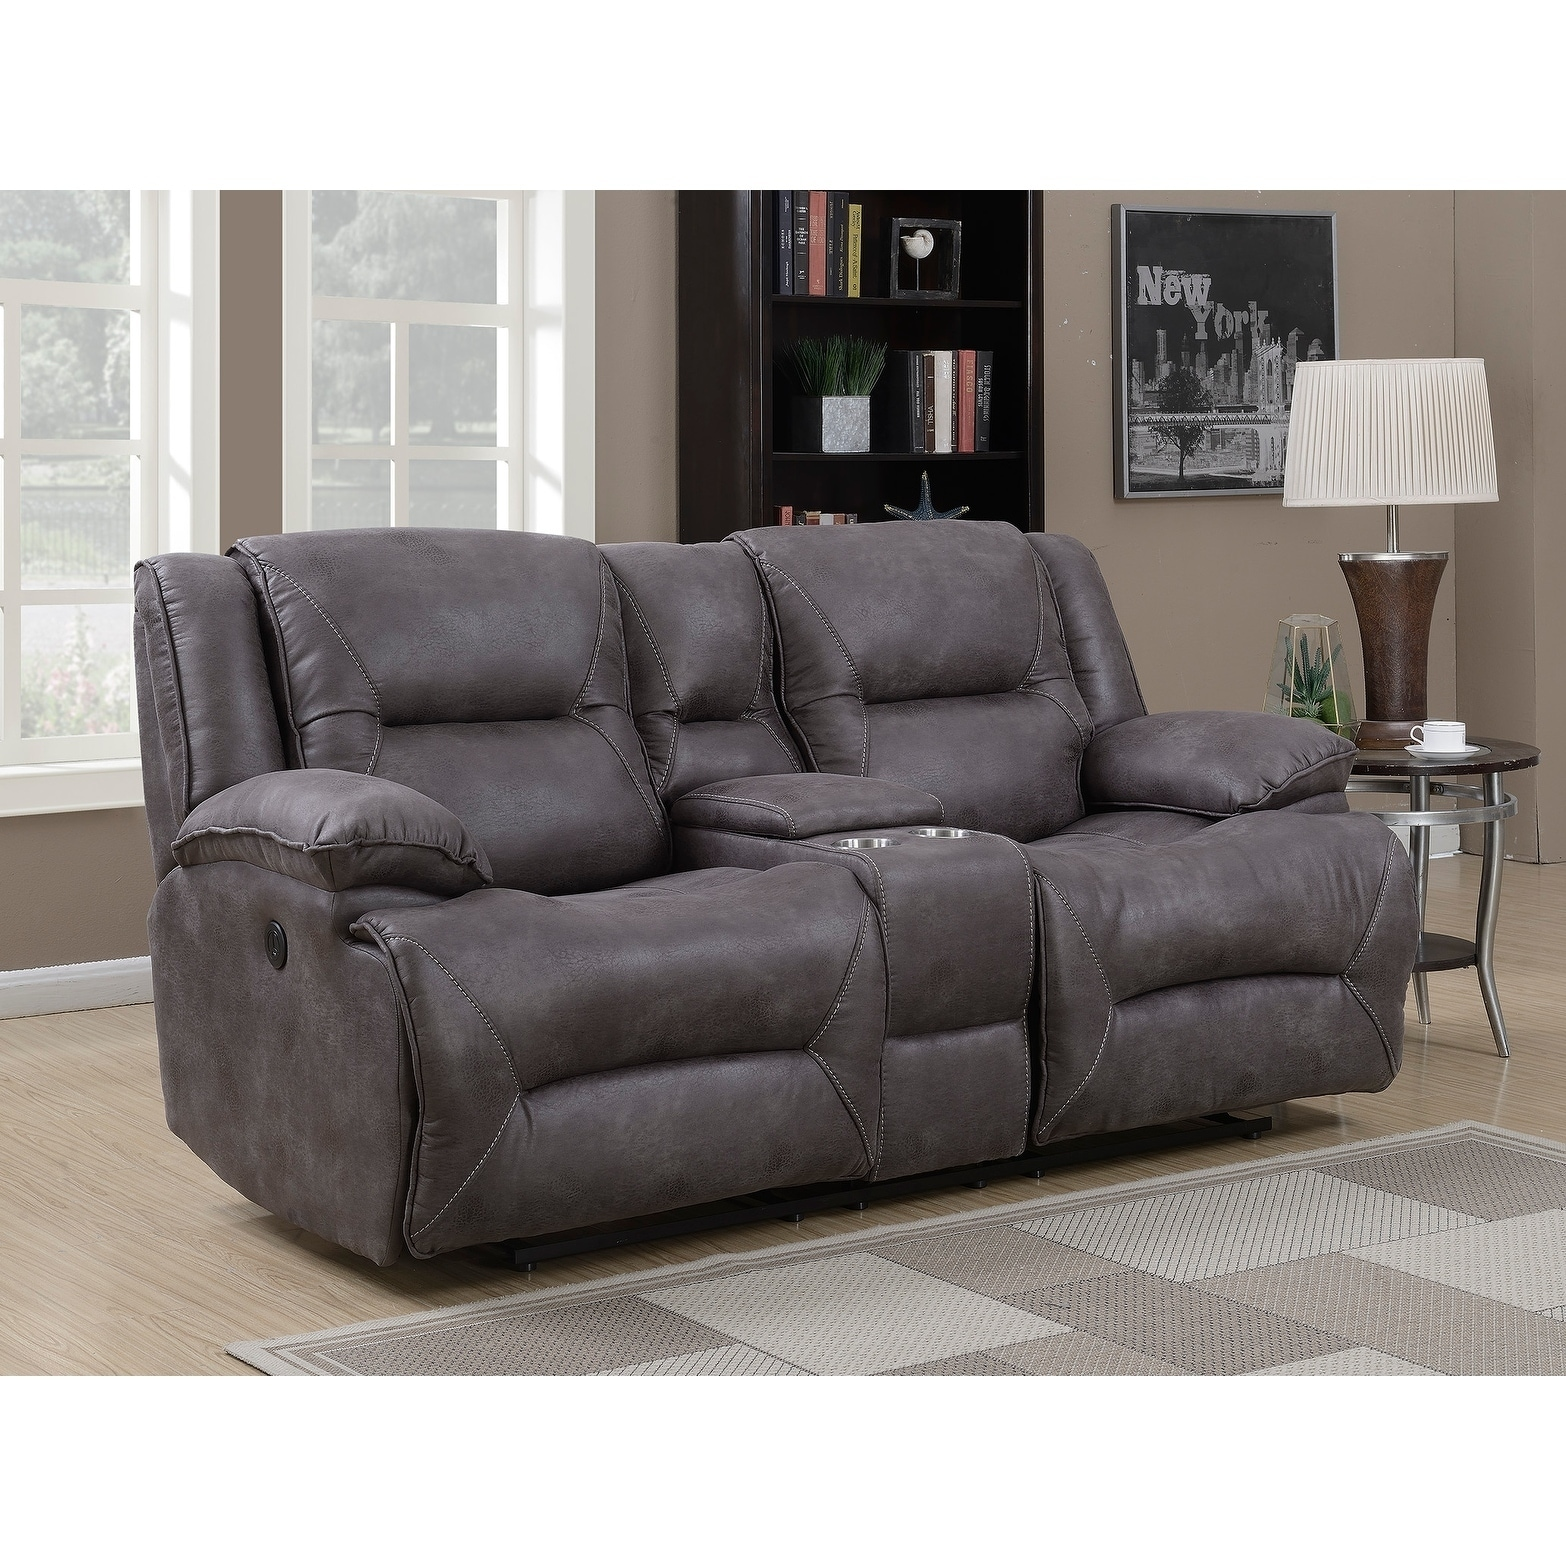 Mstar Dylan Dual Power Reclining Loveseat With Storage Console, Memory Foam  Seat Toppers, USB